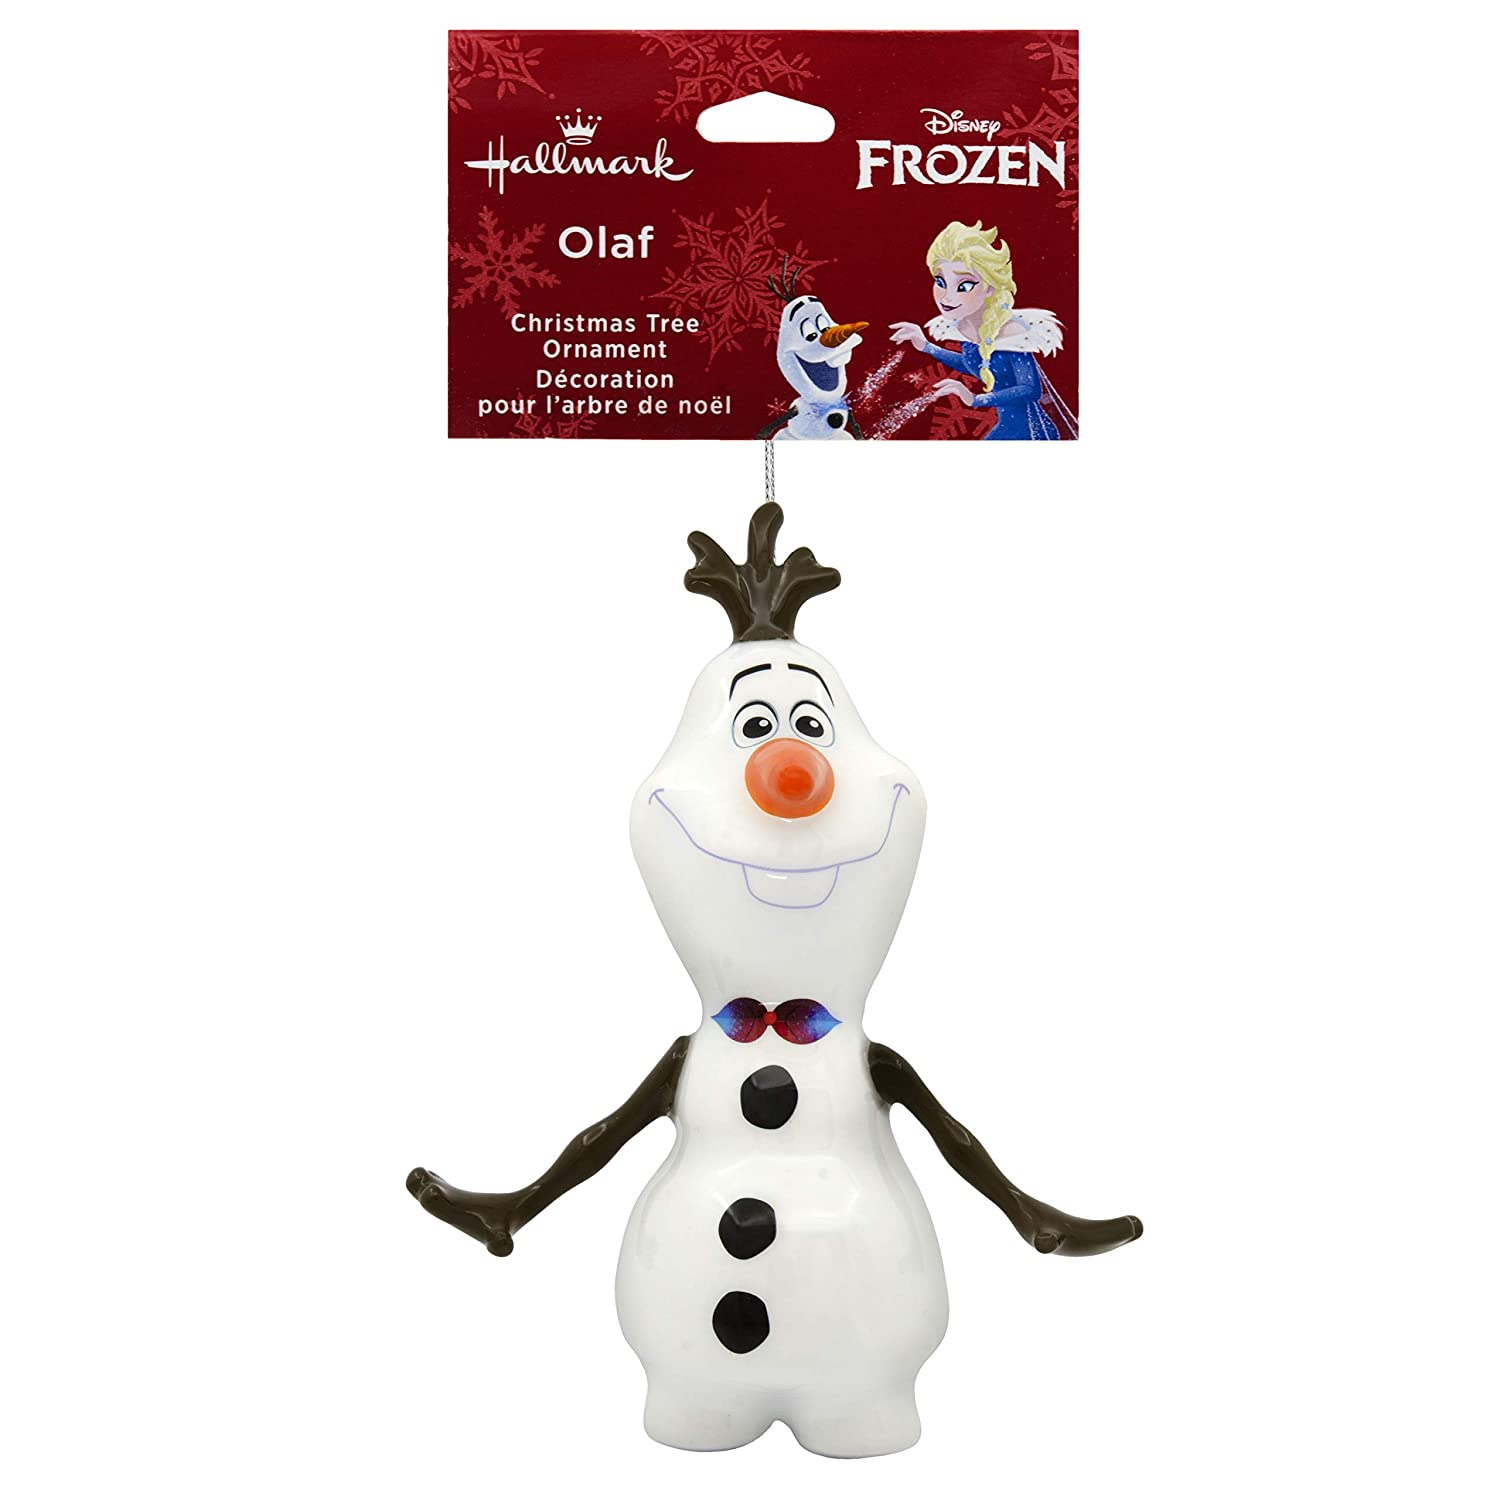 Amazon.com: Hallmark Christmas Ornament Disney Frozen Adventure Olaf ...